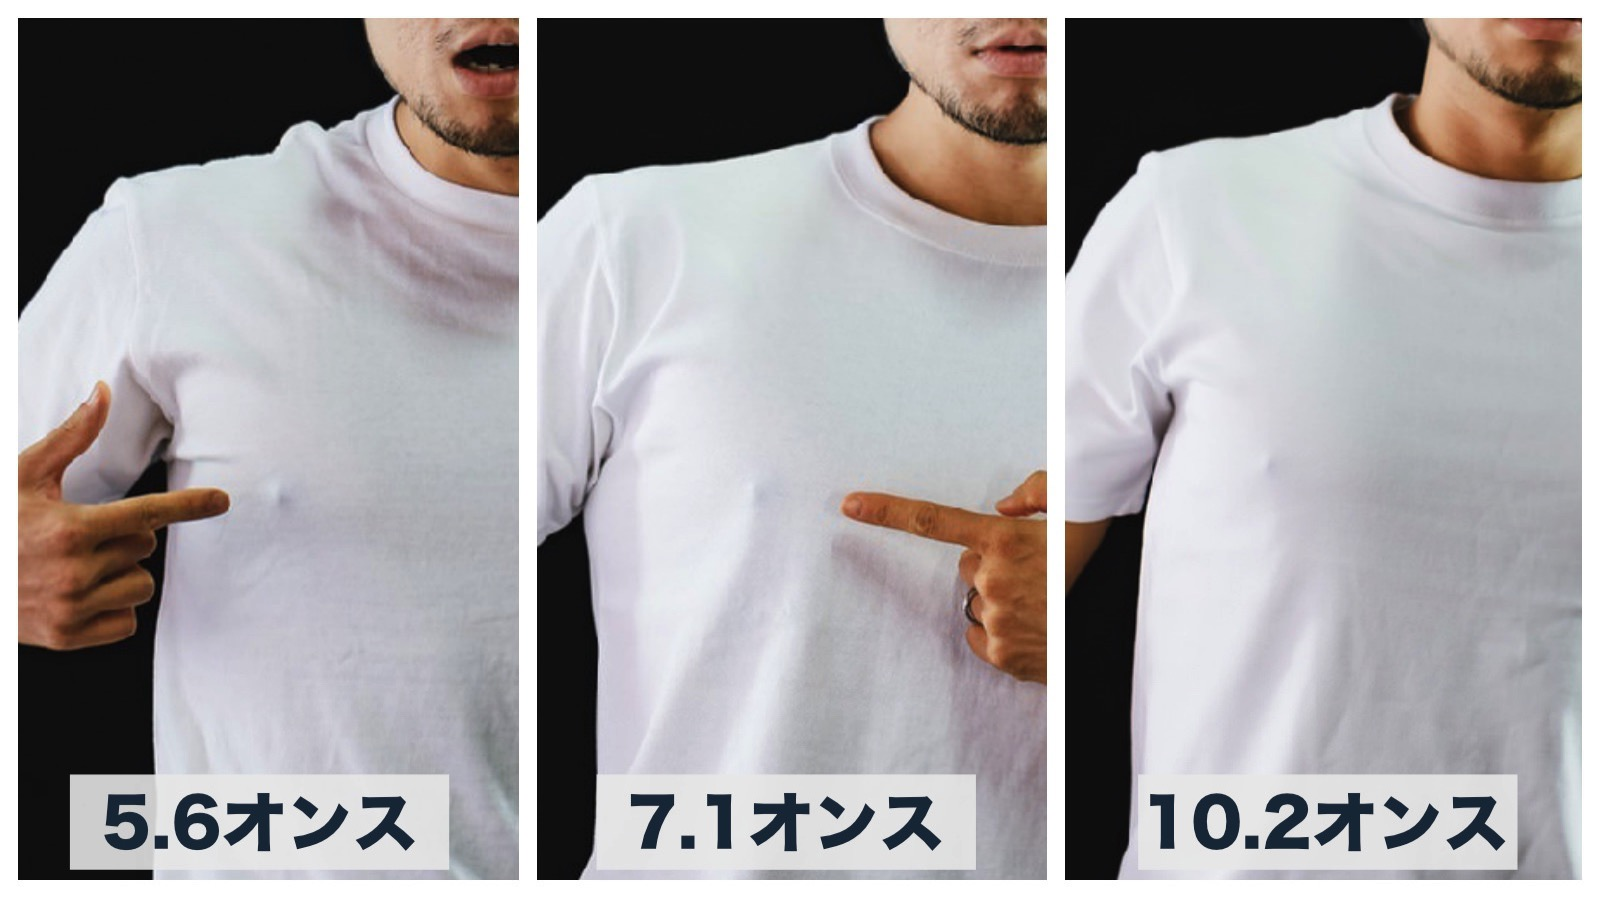 Three-Types-of-White-Tshirts-Compared-2-2.jpg